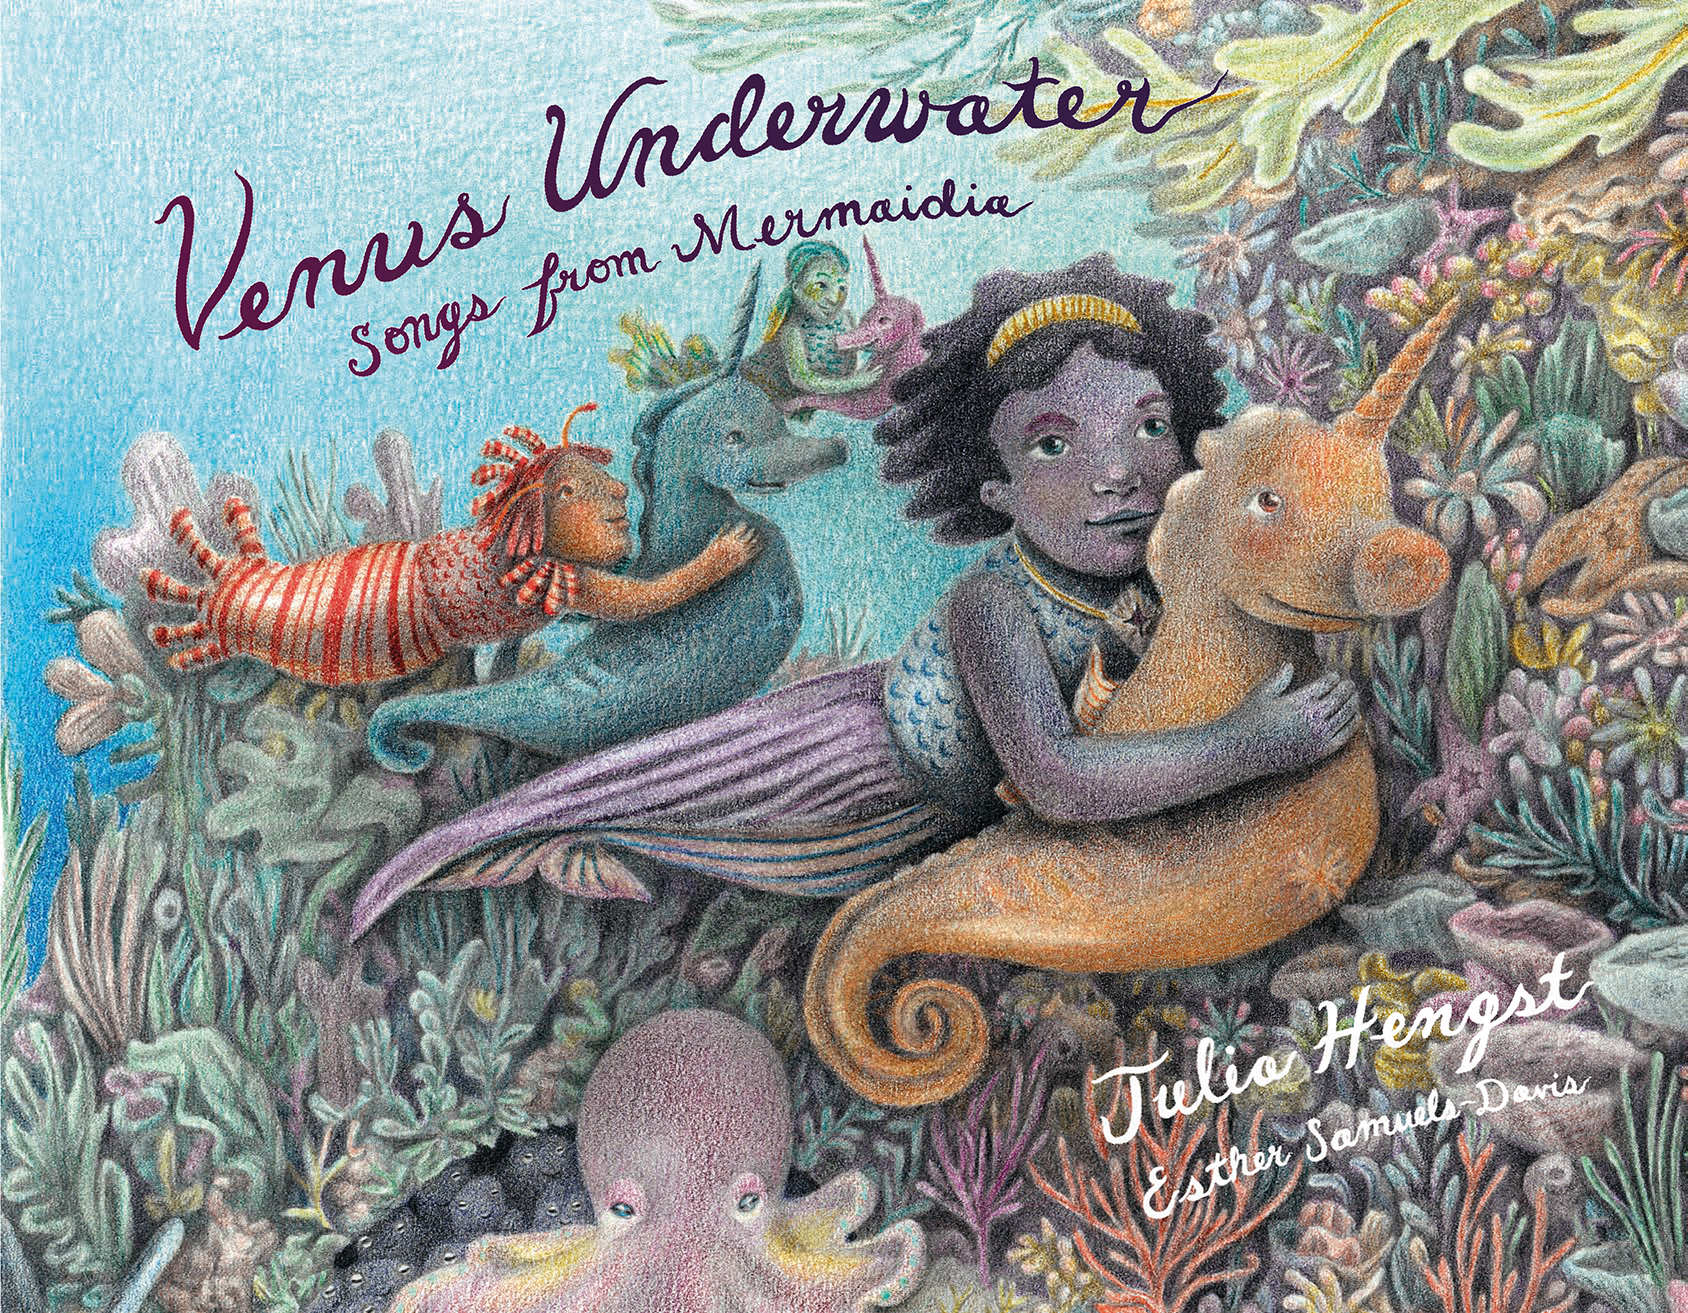 VenusUnderwater-Interior-Ingram-EBOOK-ISBN- 9781736137512.indd